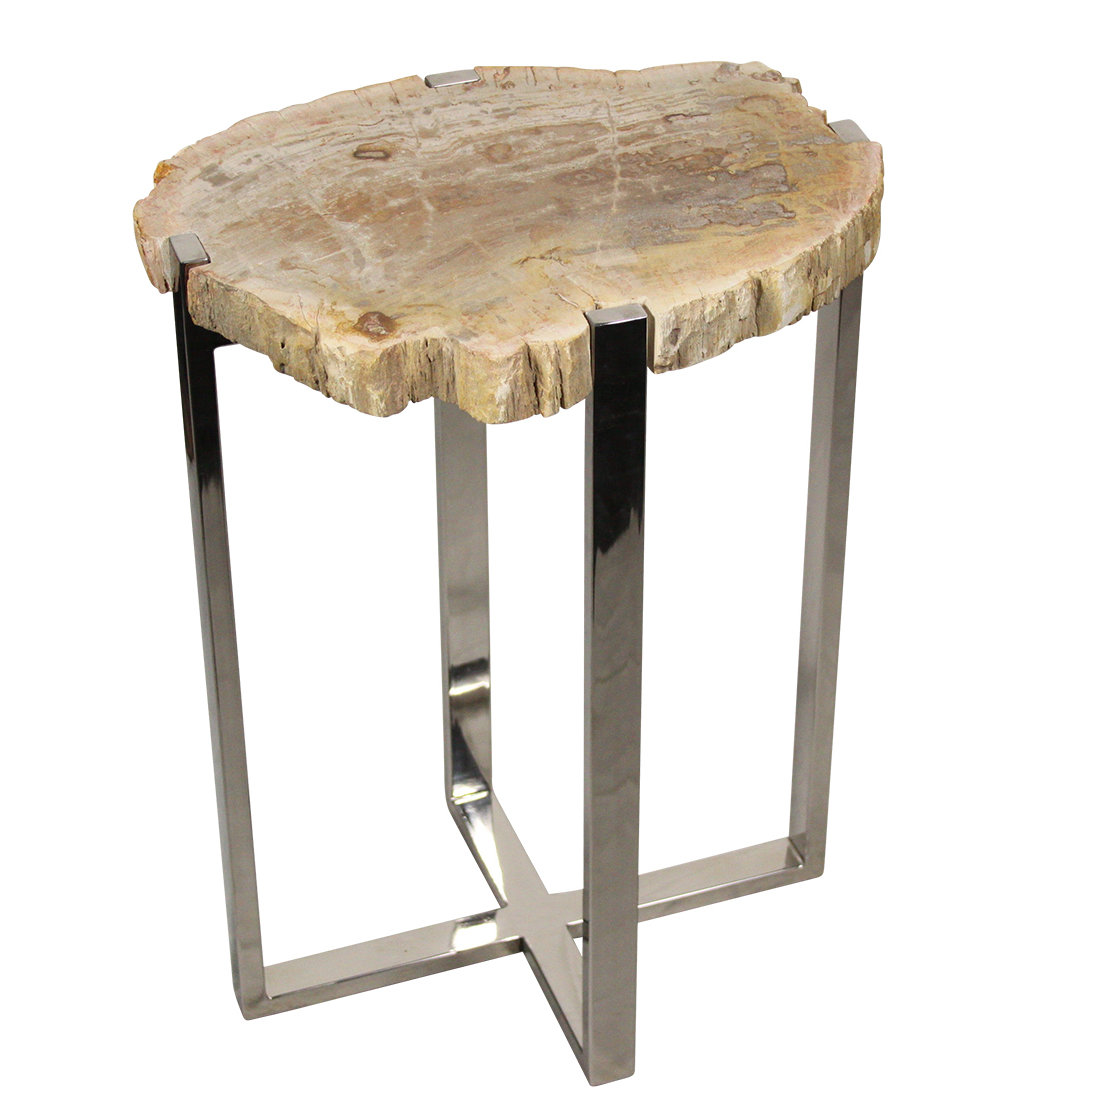 ibolili petrified wood end table accent white and brown side pub tops sofa with storage drawers percussion stool coffee gold accents hampton bay furniture square nesting tables